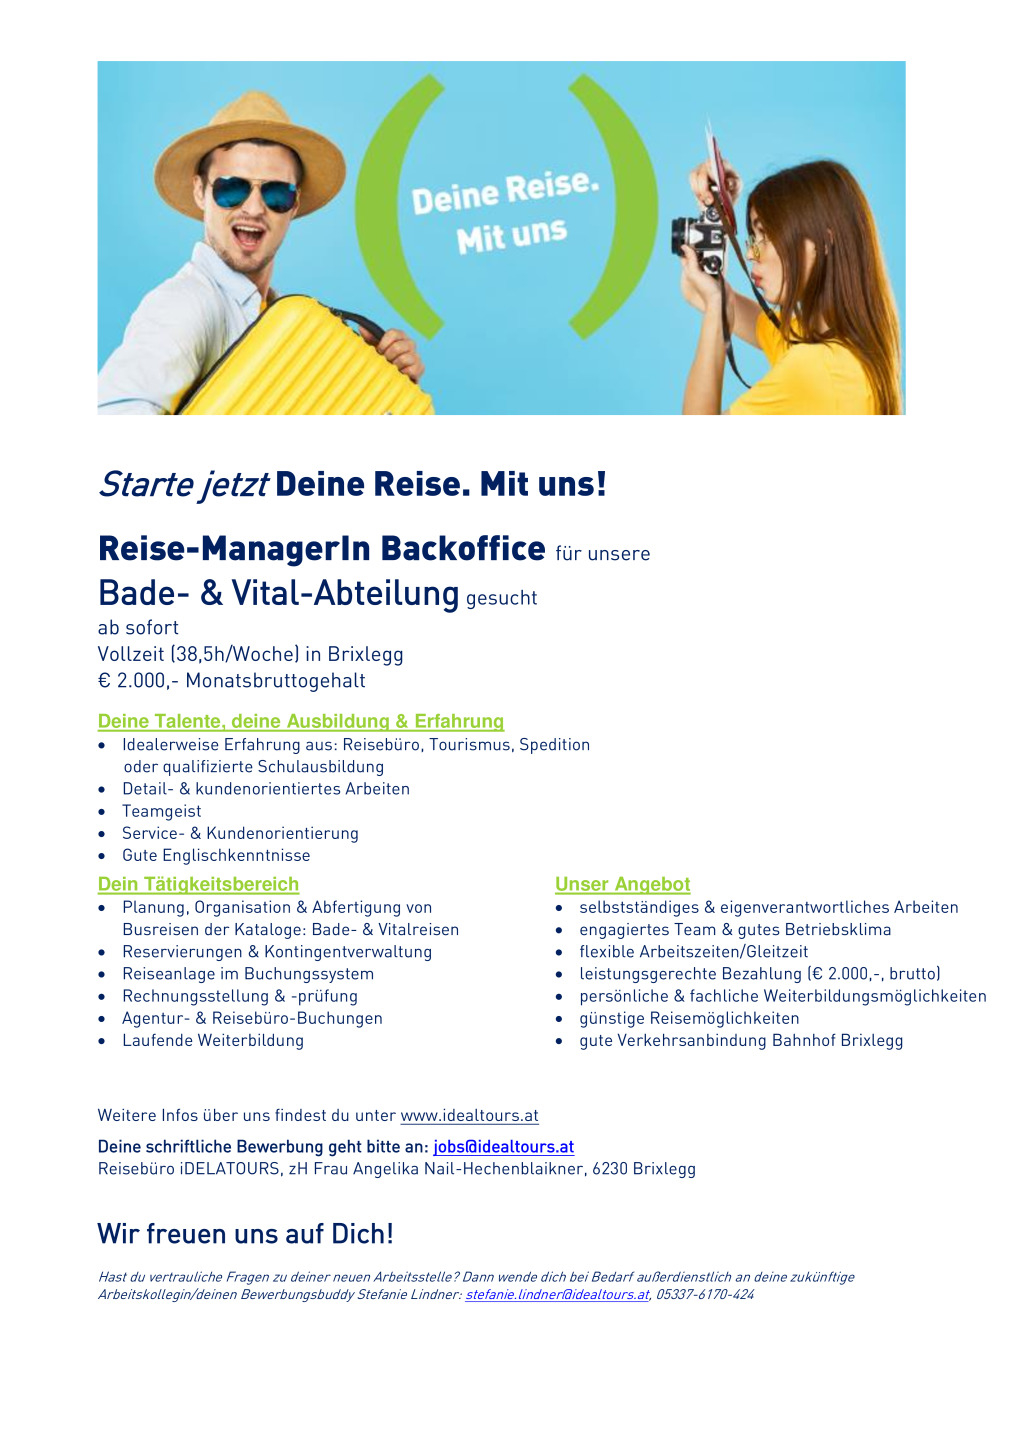 Reise-ManagerIn Backoffice